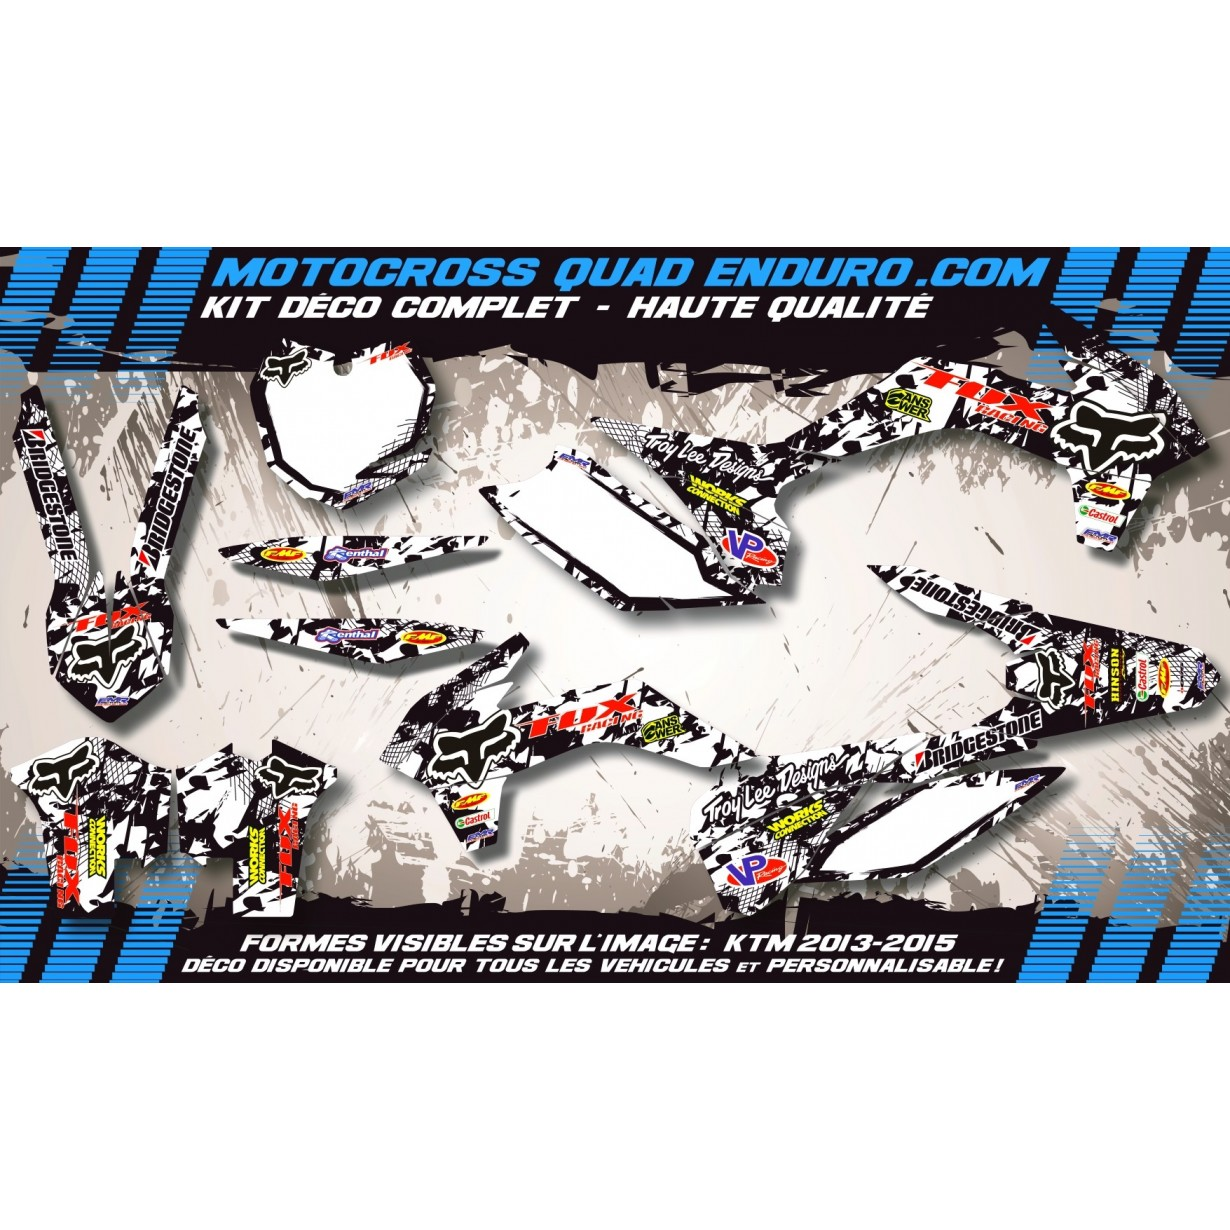 KIT DÉCO Perso 150-230 CRF 03-07 FOX MA9F